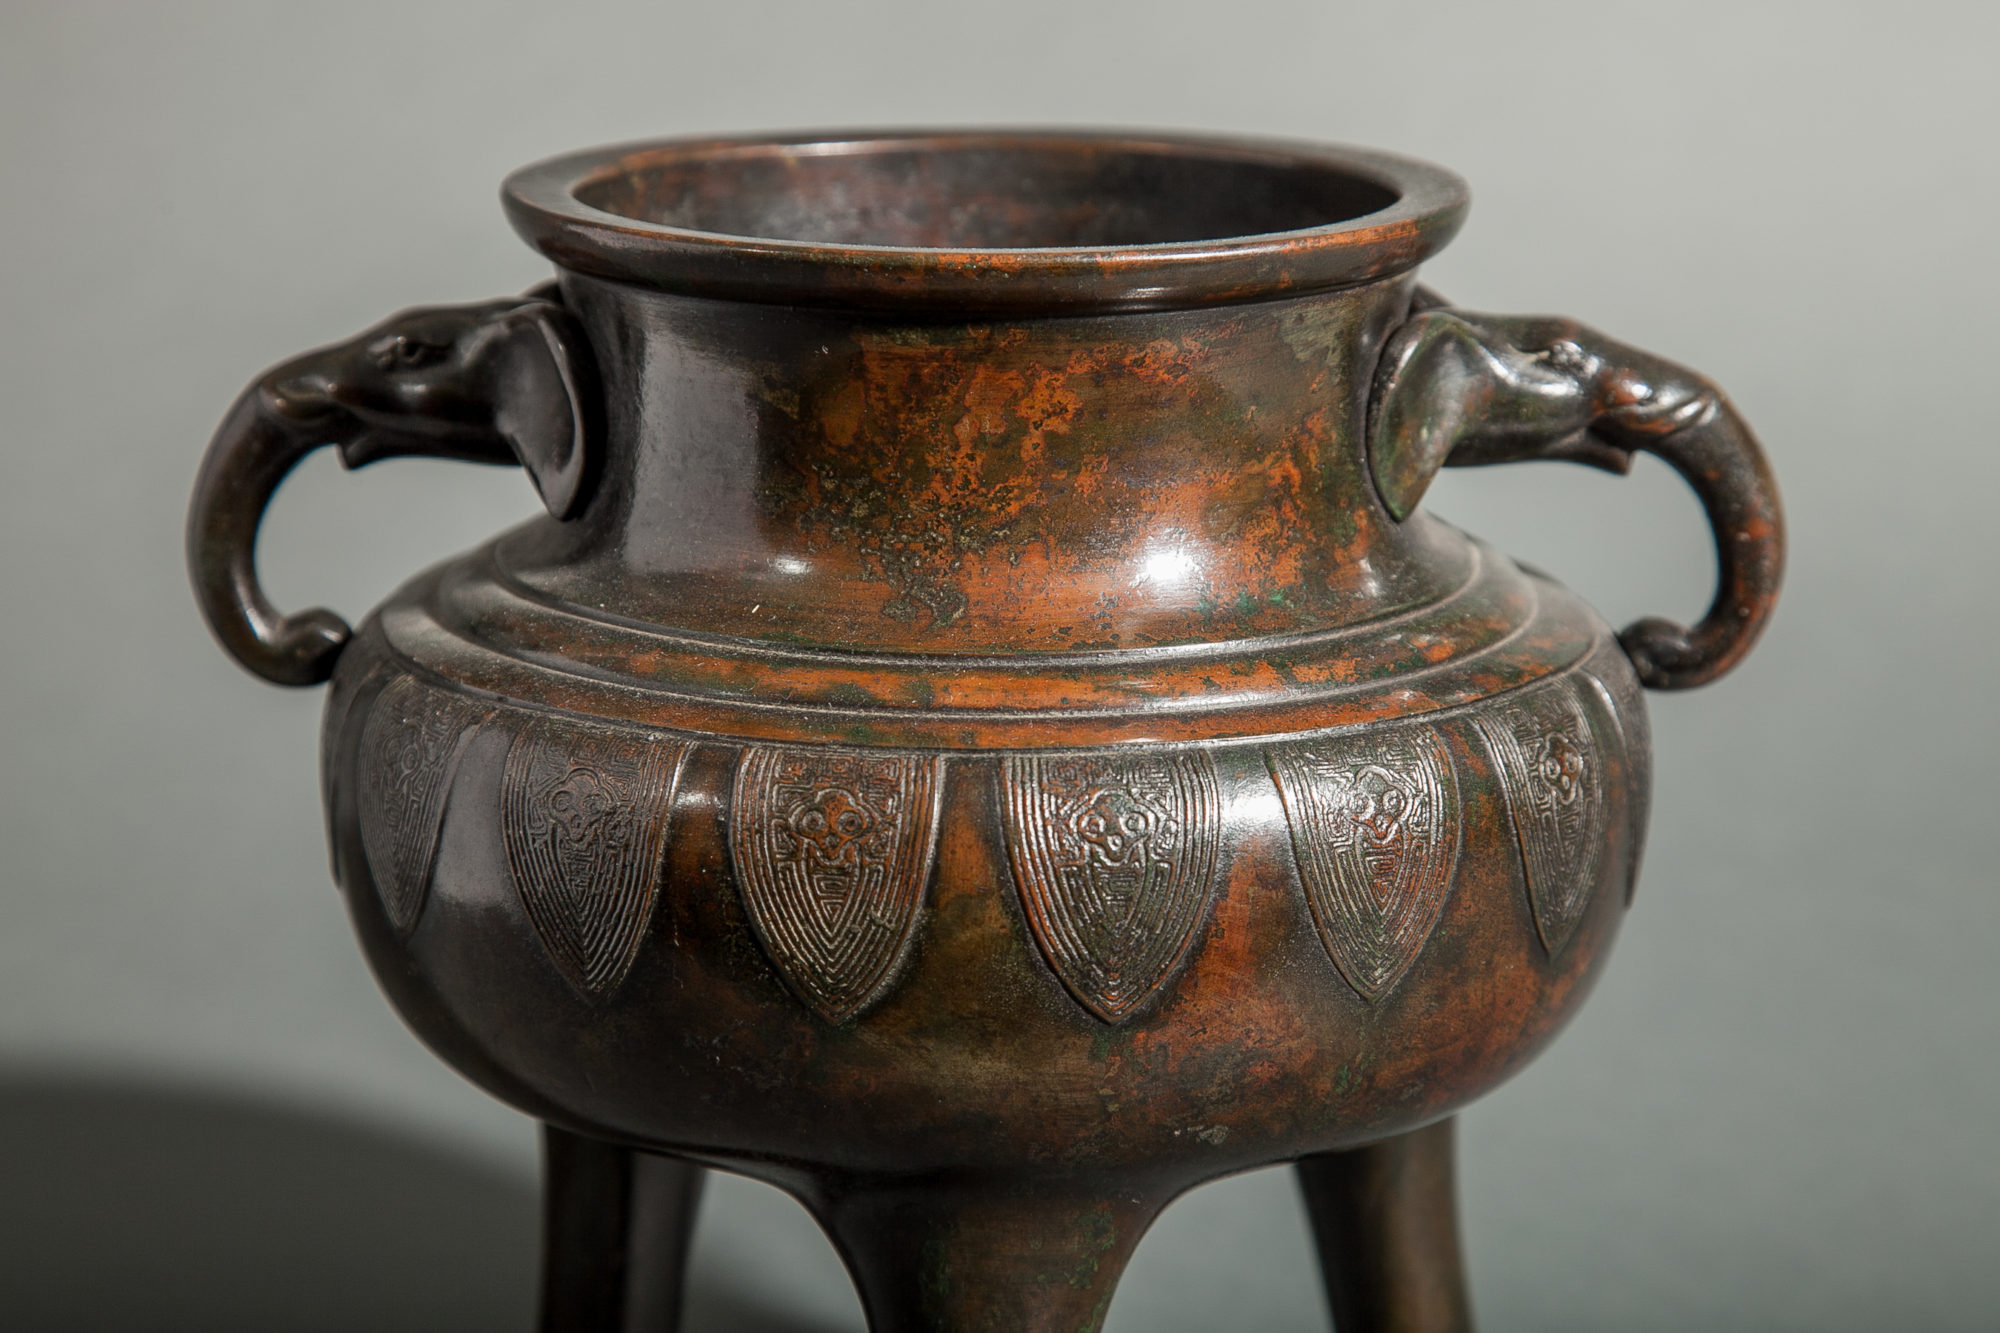 Japanese Bronze Censer with Archaic Blades Design and Moulded Elephant Head Handle